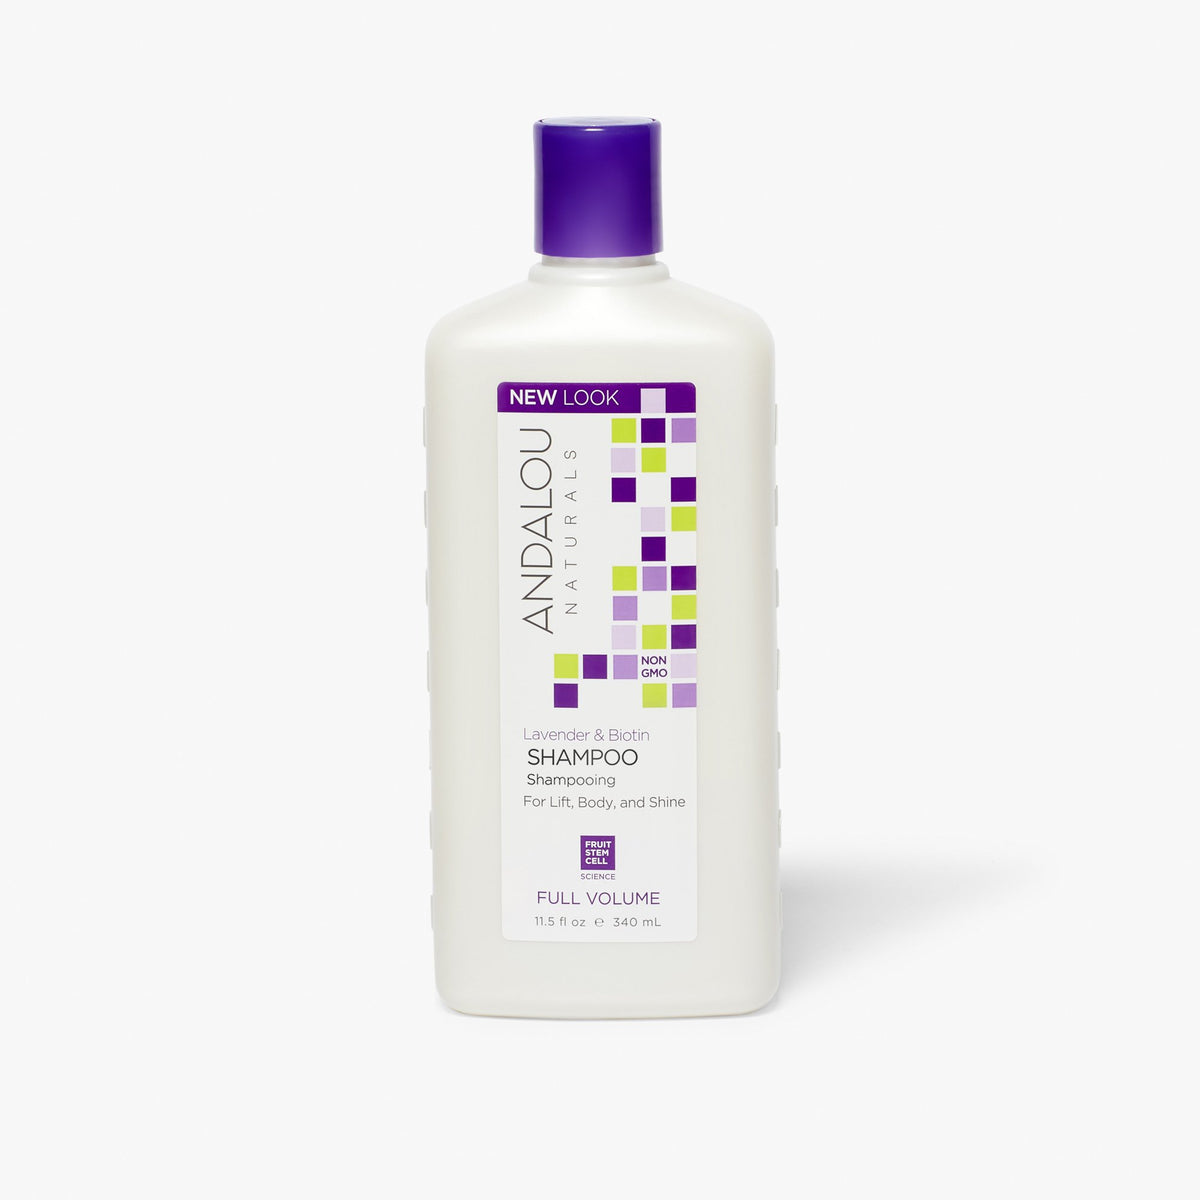 bottle of Lavender & Biotin Full Volume Shampoo